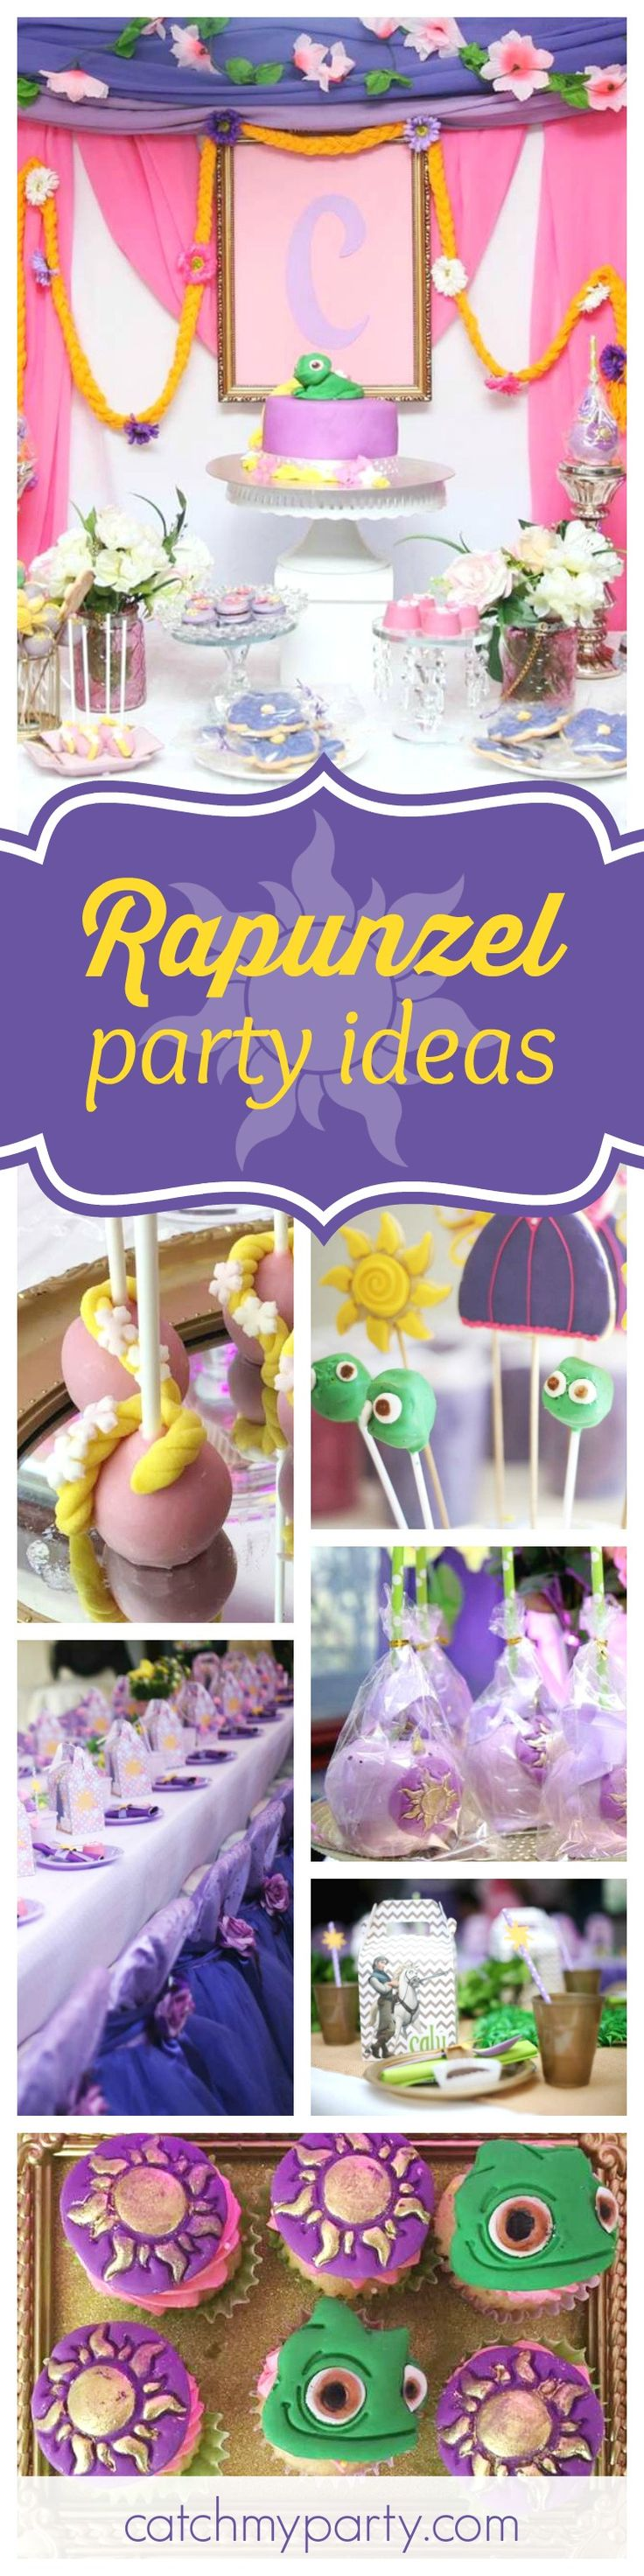 Don't miss this beautiful Rapunzel birthday party. The lizard Pascal cake pops are so cute!! See more party ideas and share yours at CatchMyParty.com